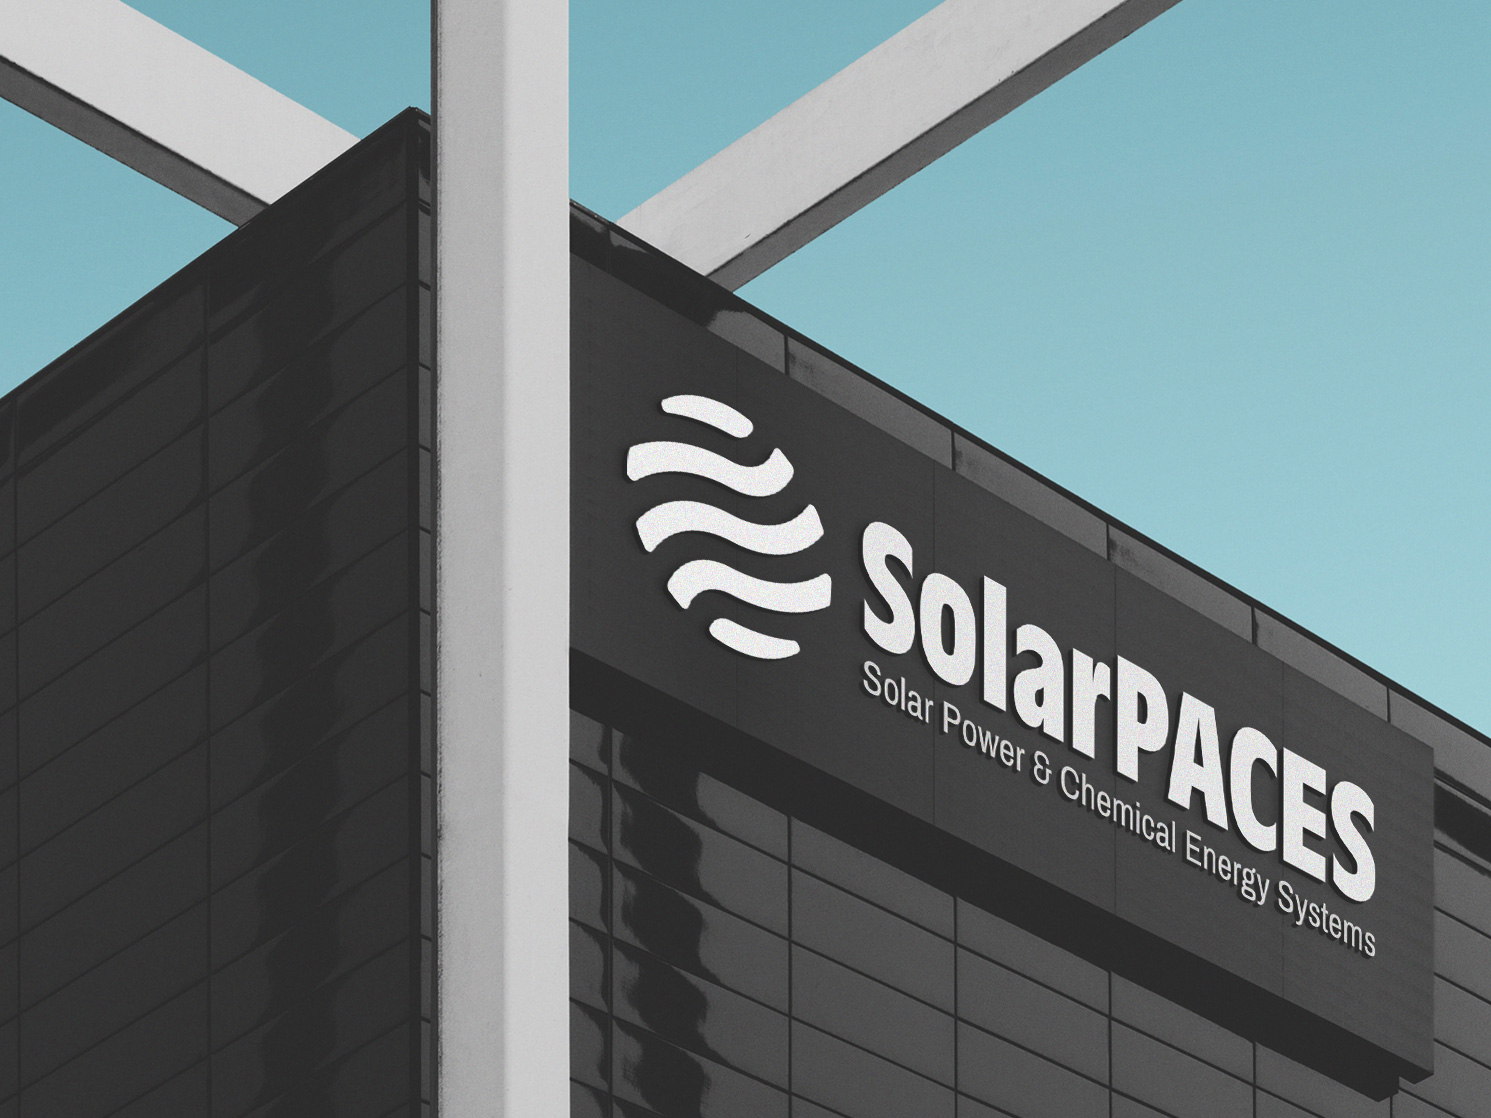 solar_logo_on_building_2